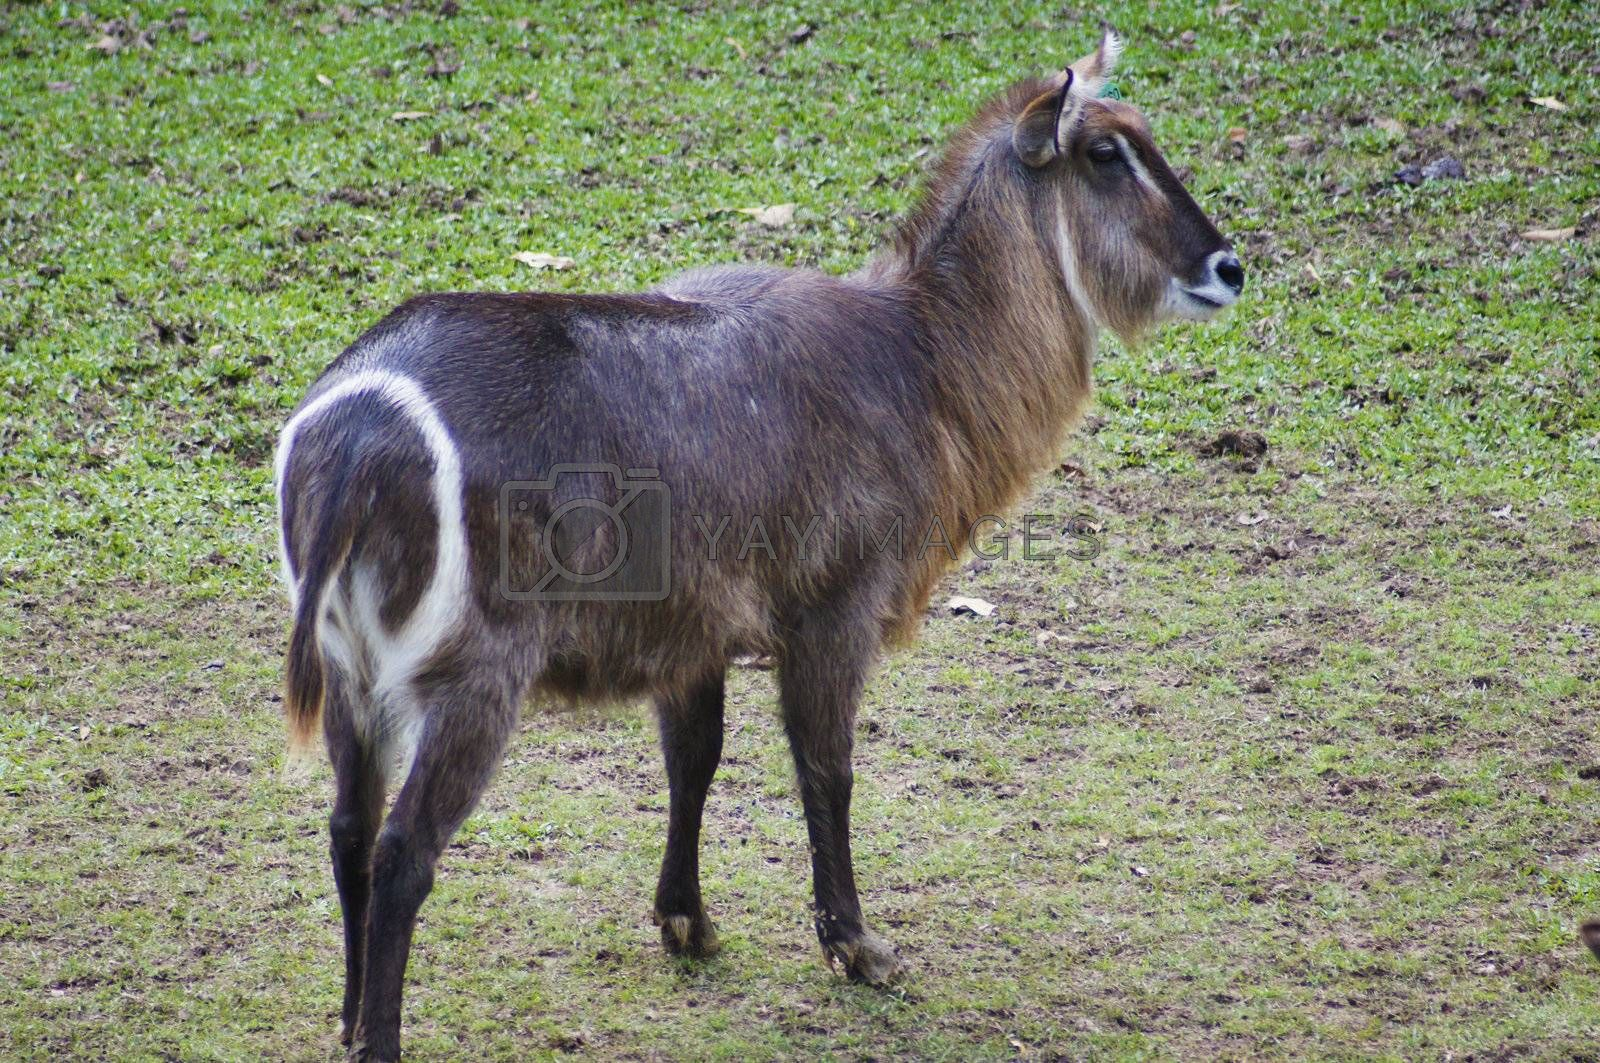 Waterbuck is a variety of gazelle in the African Savanna to live together in flocks zebras and other animals